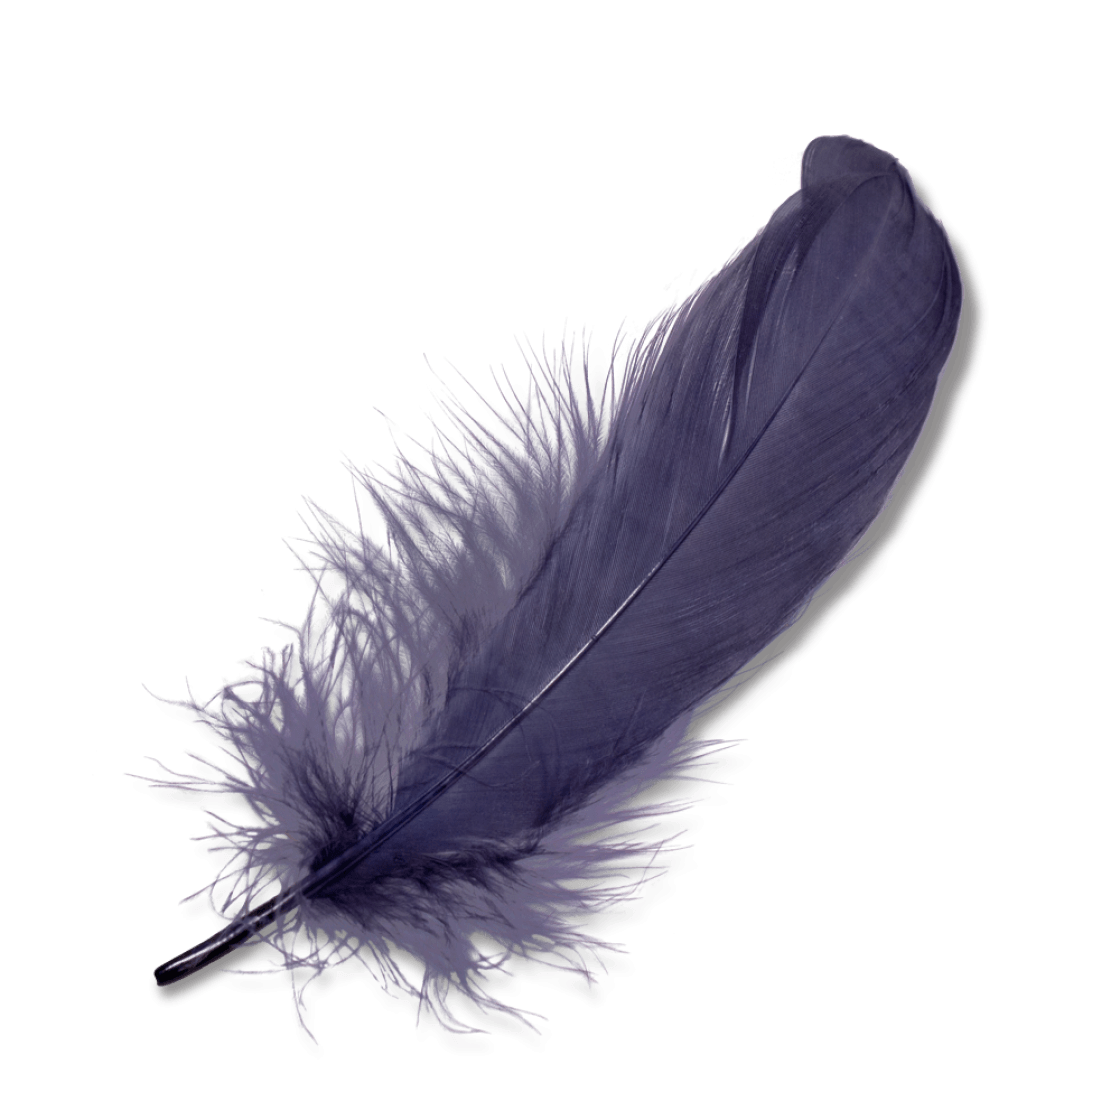 Feathers Png  U0026 Free Feathers Png Transparent Images  10224